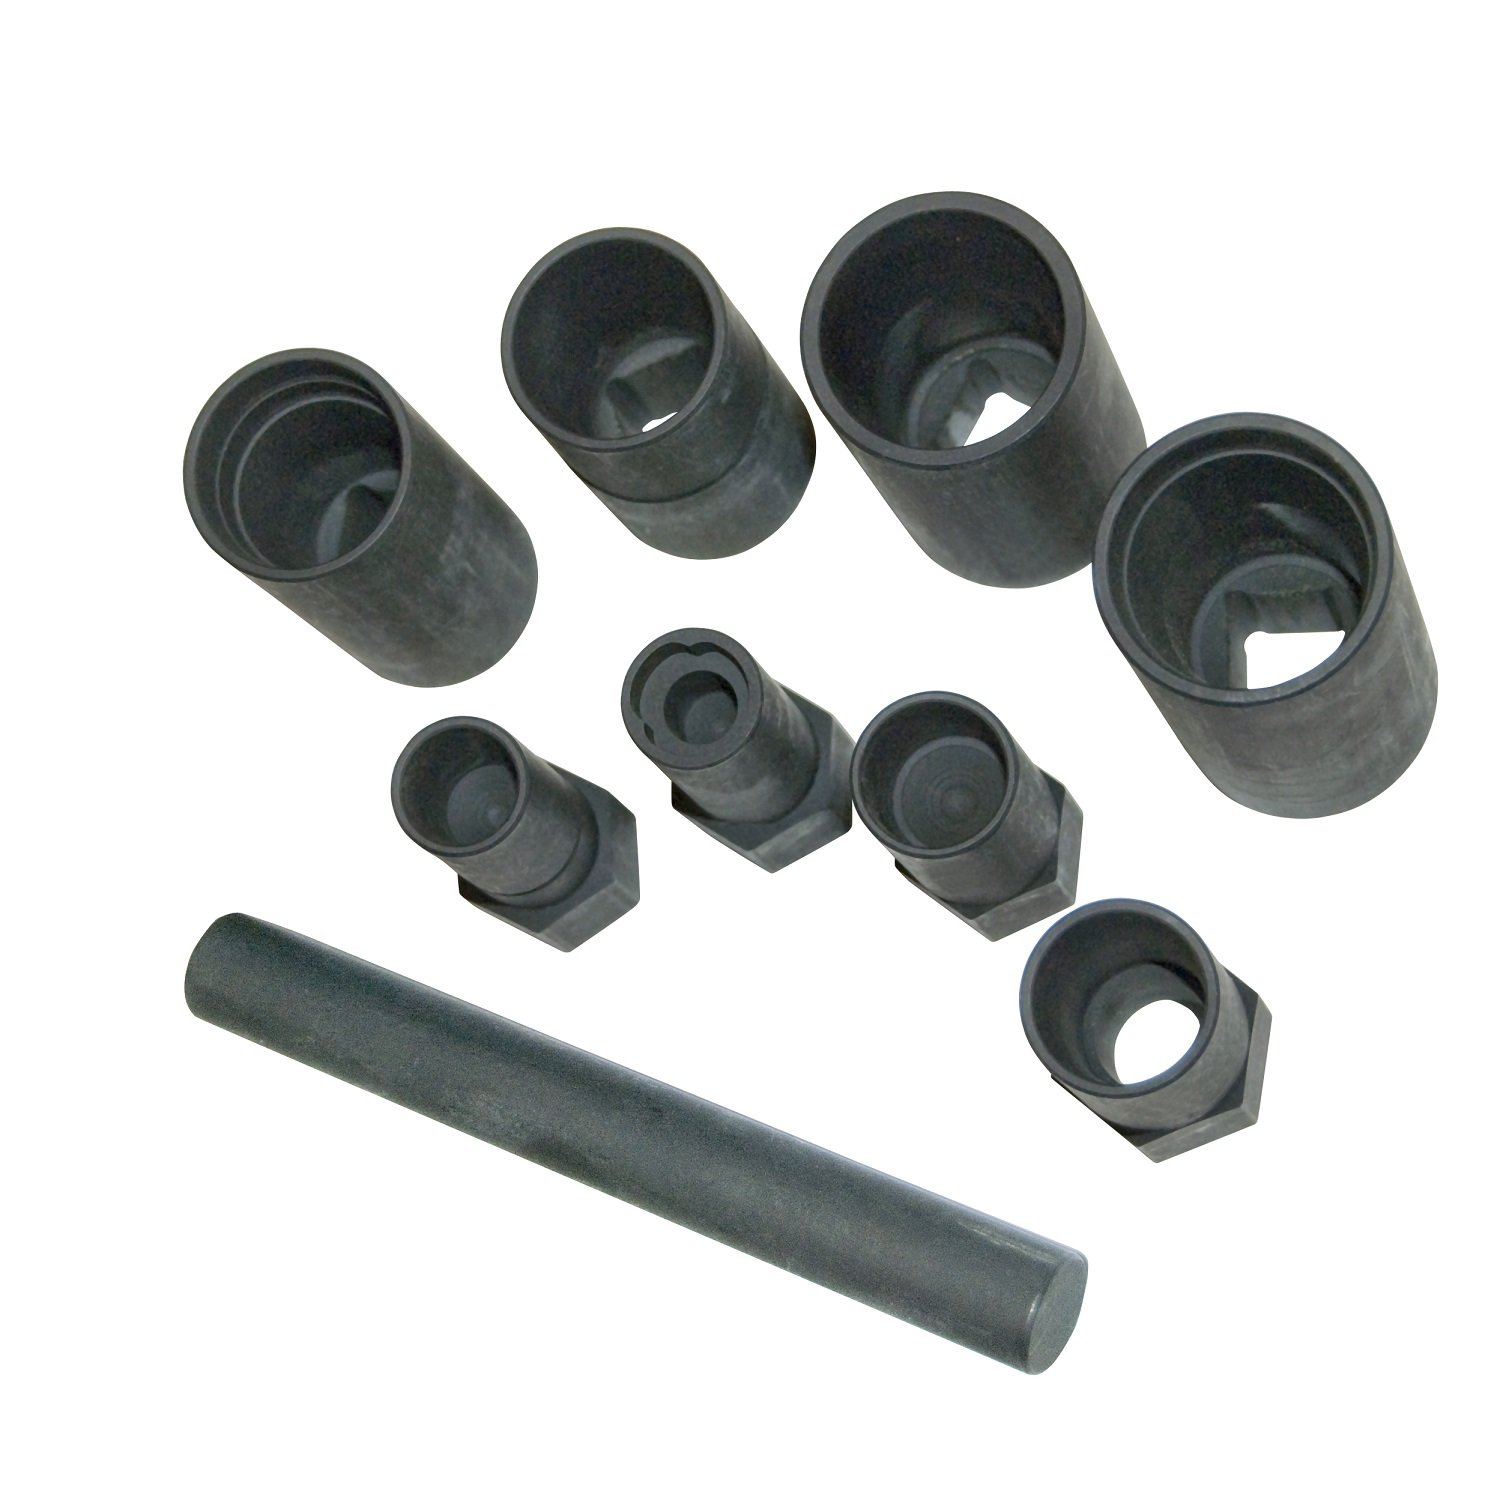 OEMTOOLS 24225 1/2 Inch Drive Wheel Lock Removal Impact Socket Set, 9-Piece